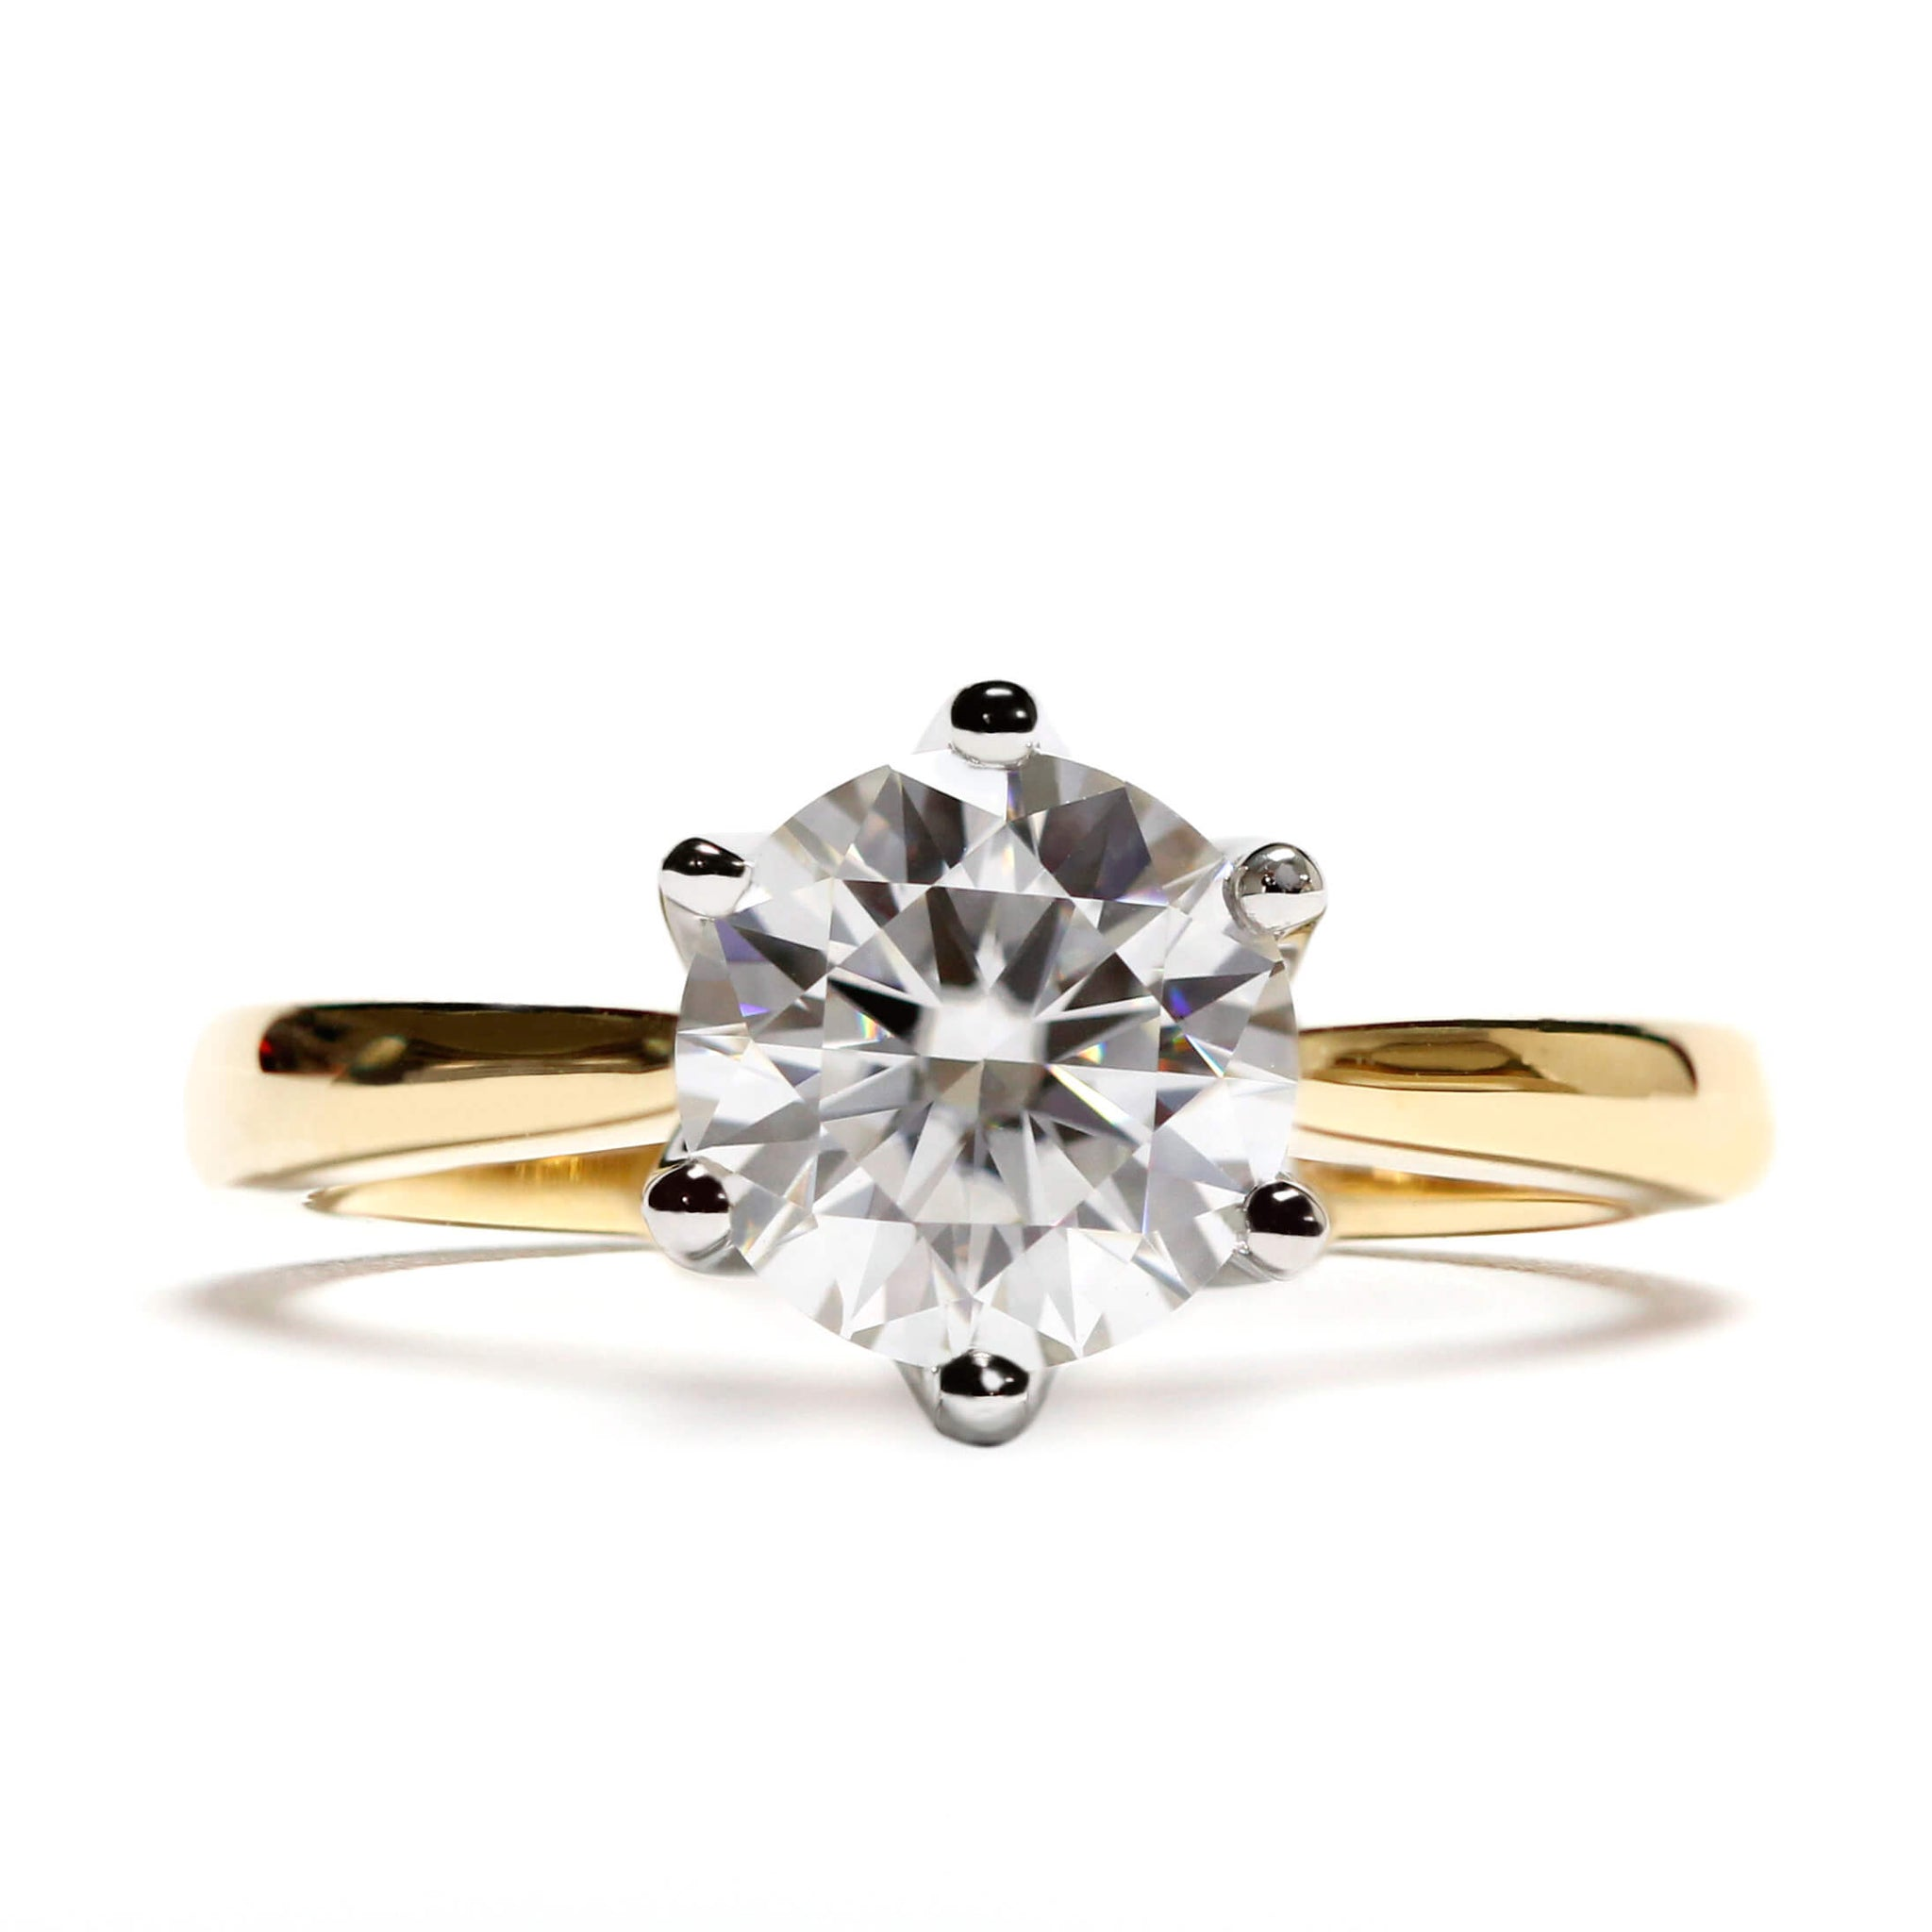 1 Carat Moissanite Engagement Ring with Flower Petal Prongs